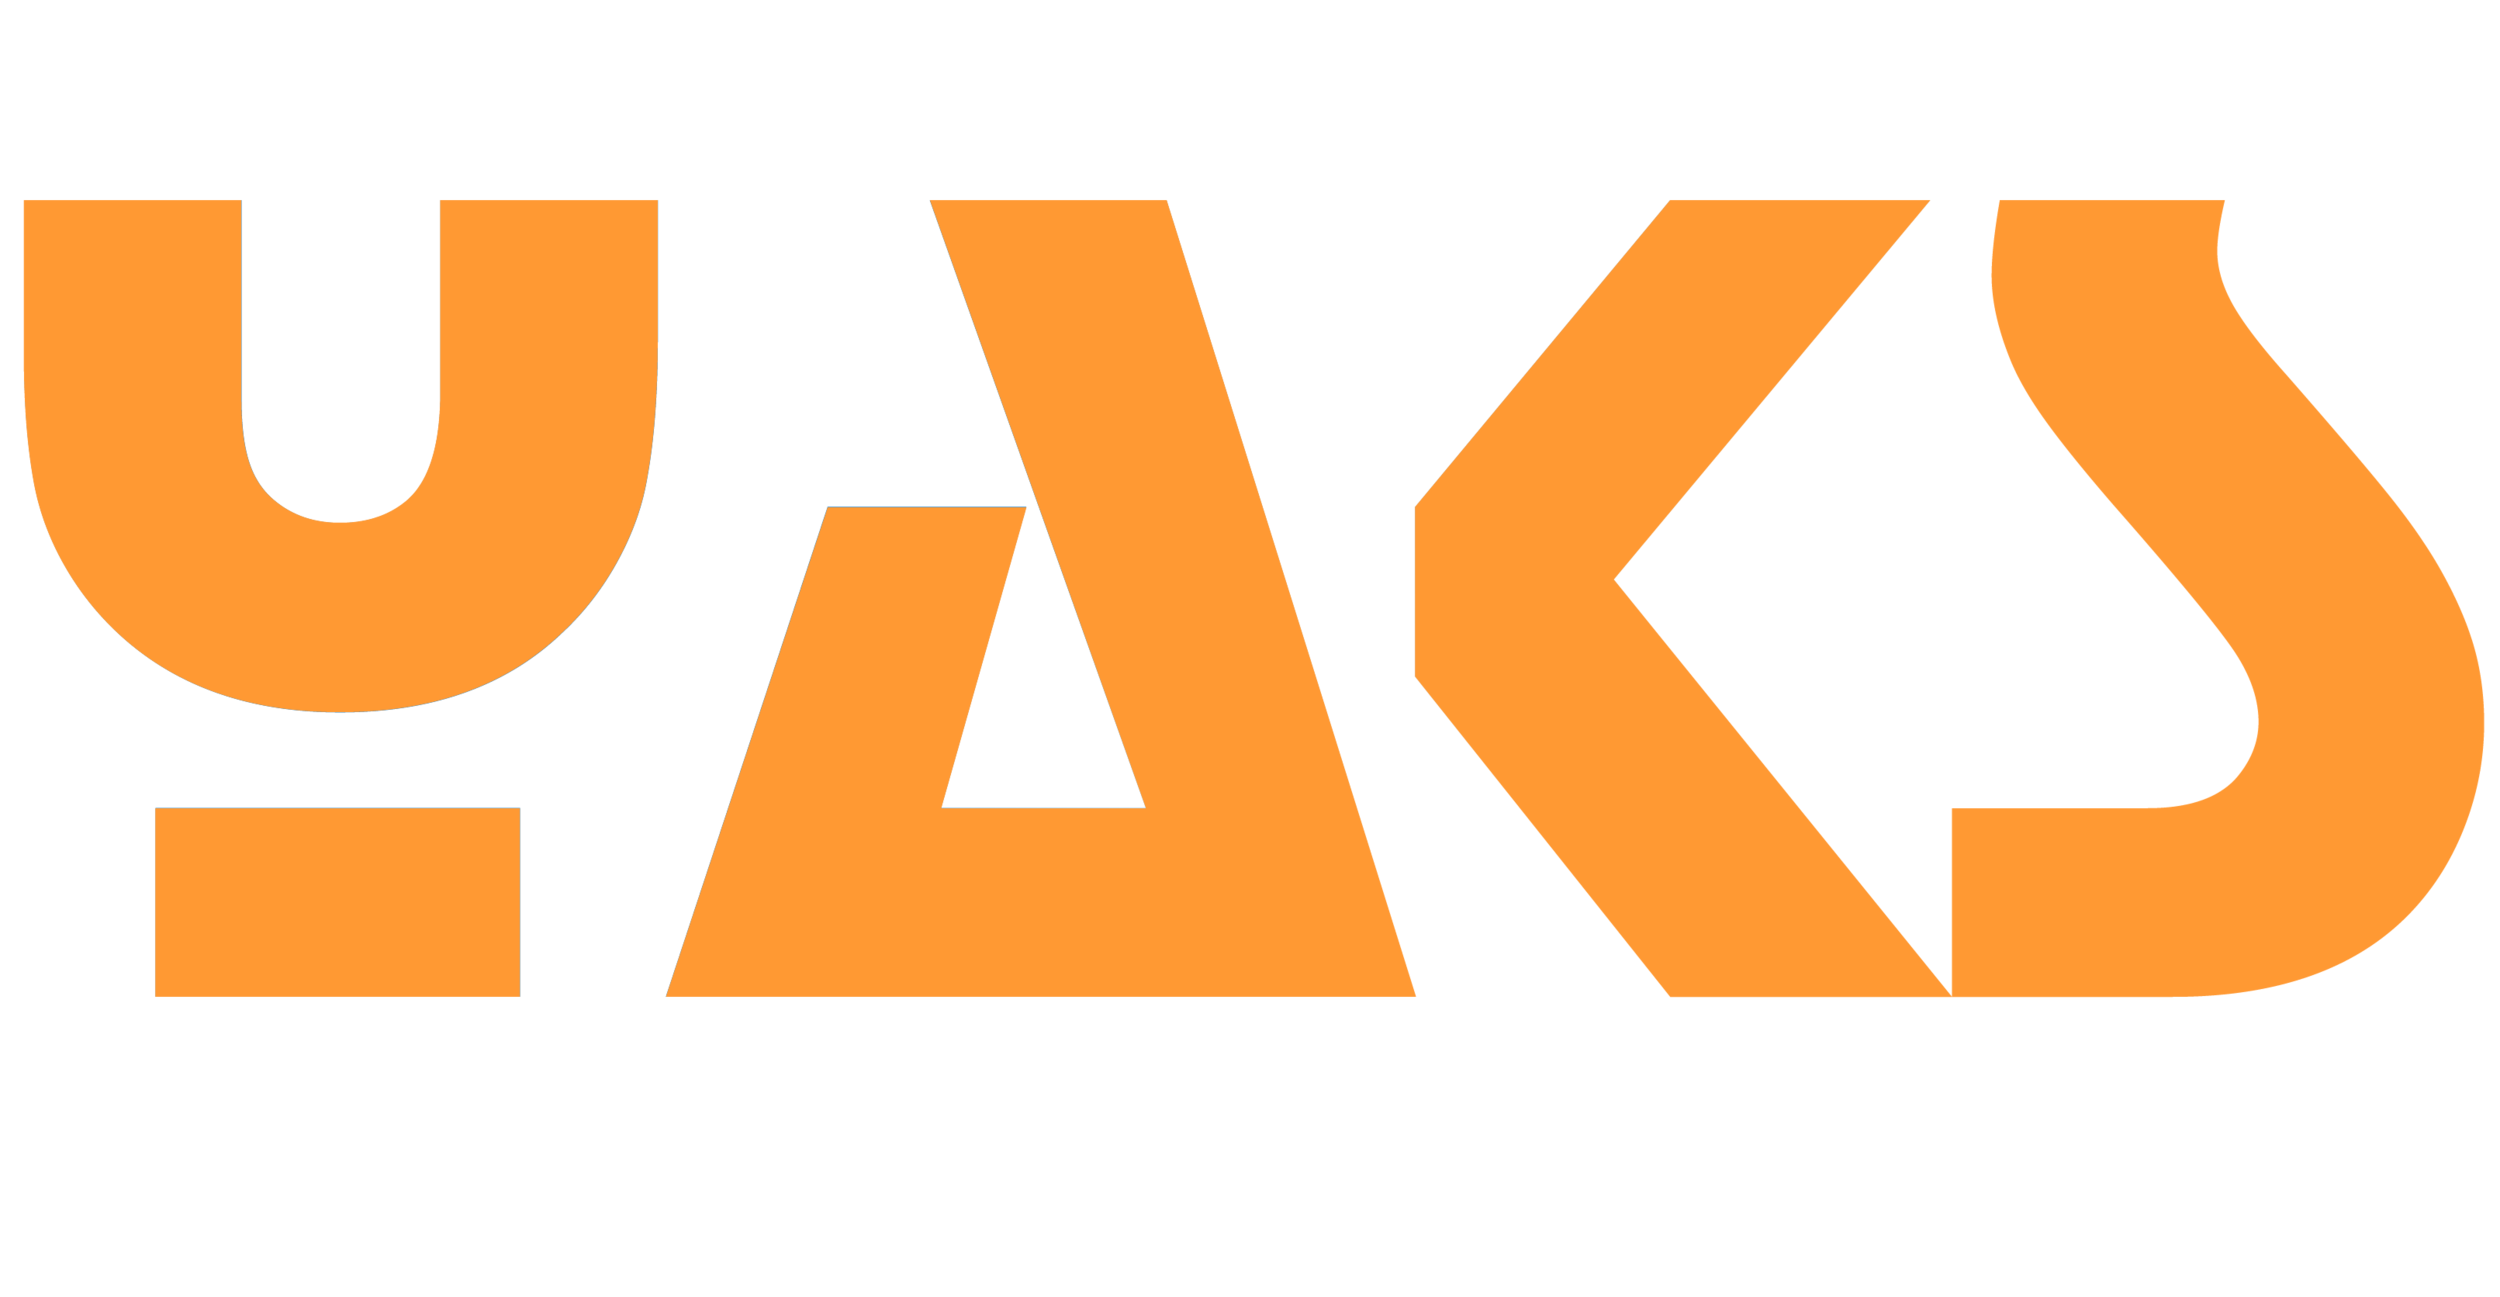 Yaks orange (1).png